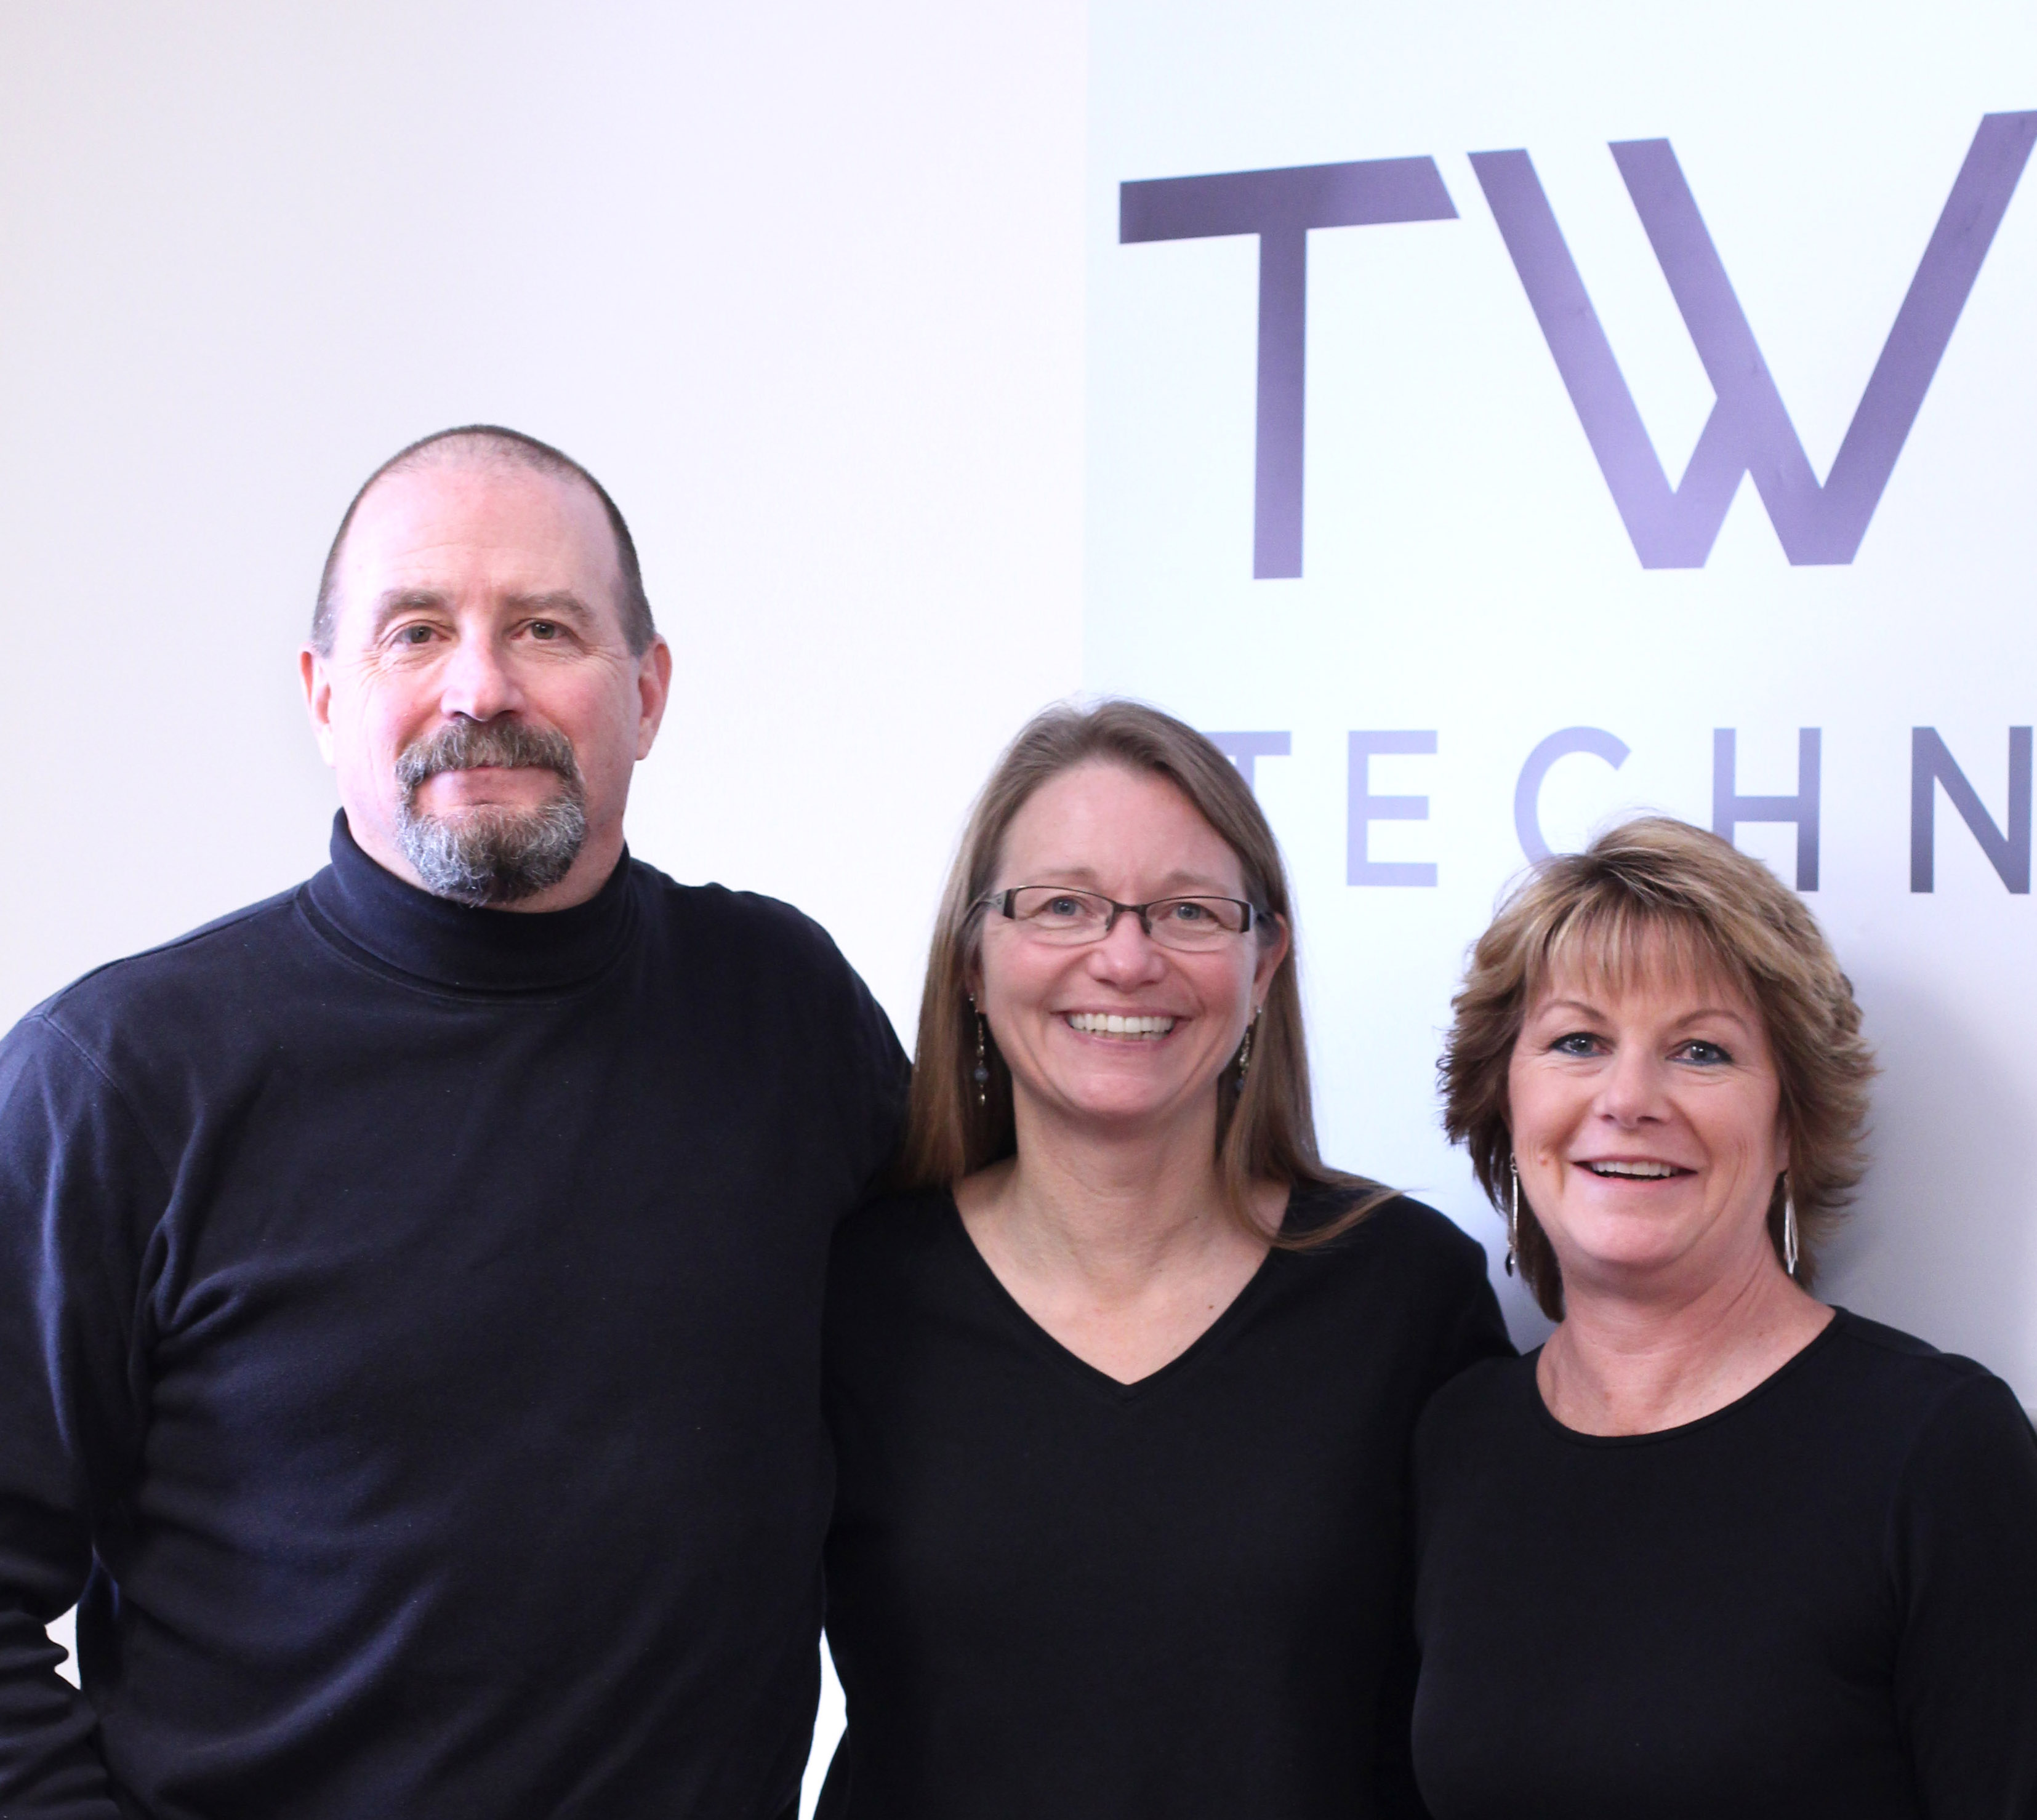 Pictured: Clark Currier, Devi Currier Momot & Dawn Currier Juneau, Owners of Twinstate Technologies